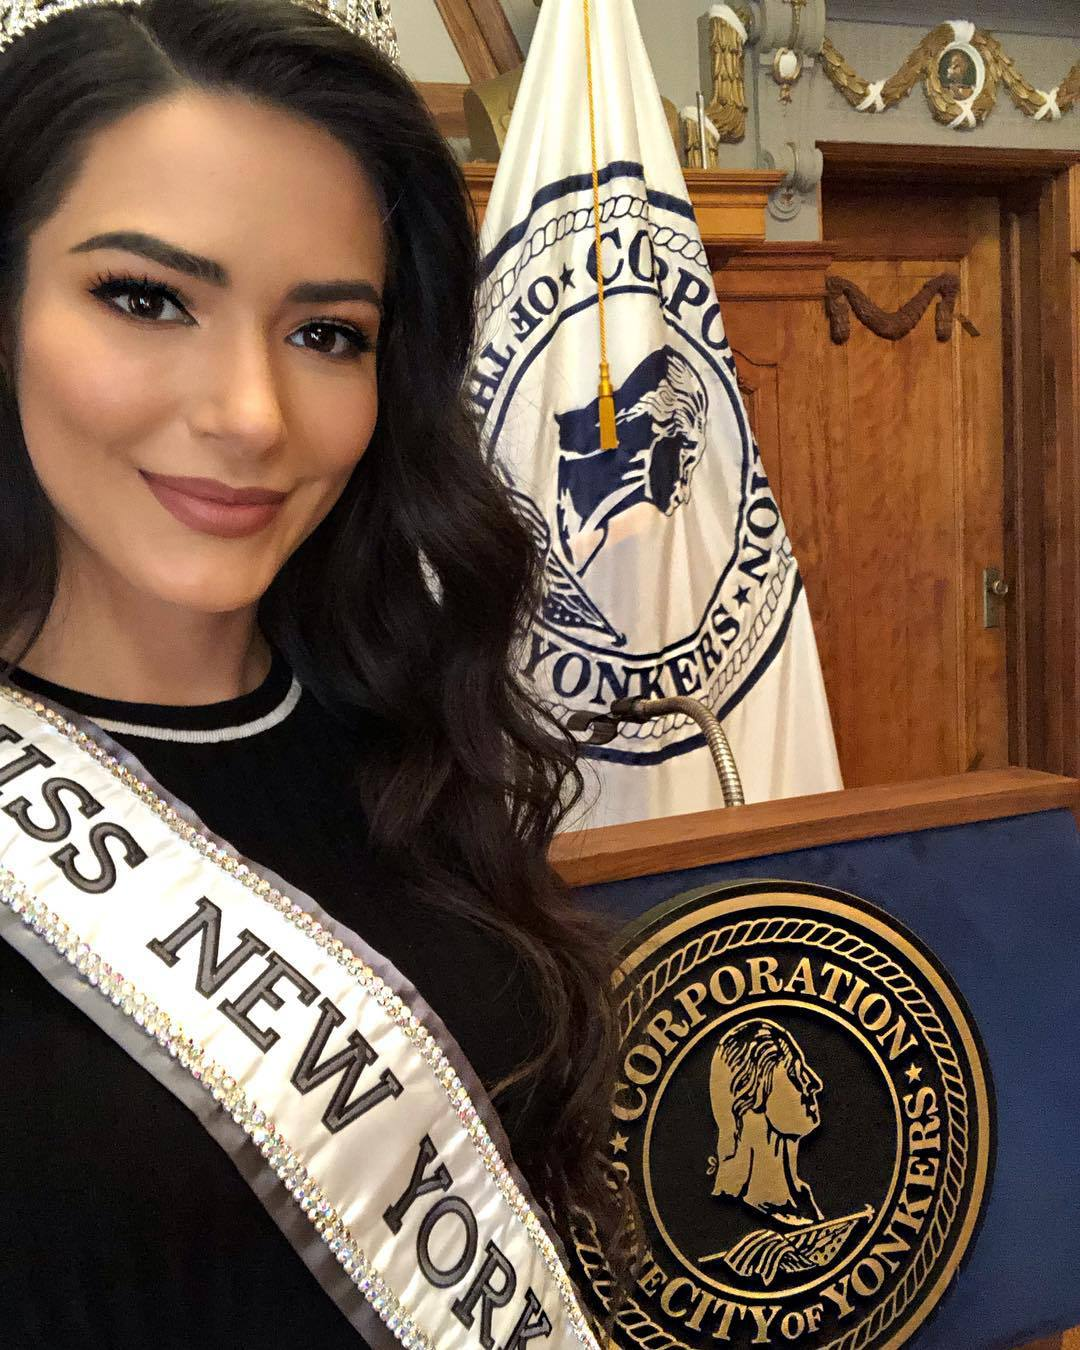 florinda kajtazi, miss new york 2019. 51545977_180075536299794_7384650199841847803_n